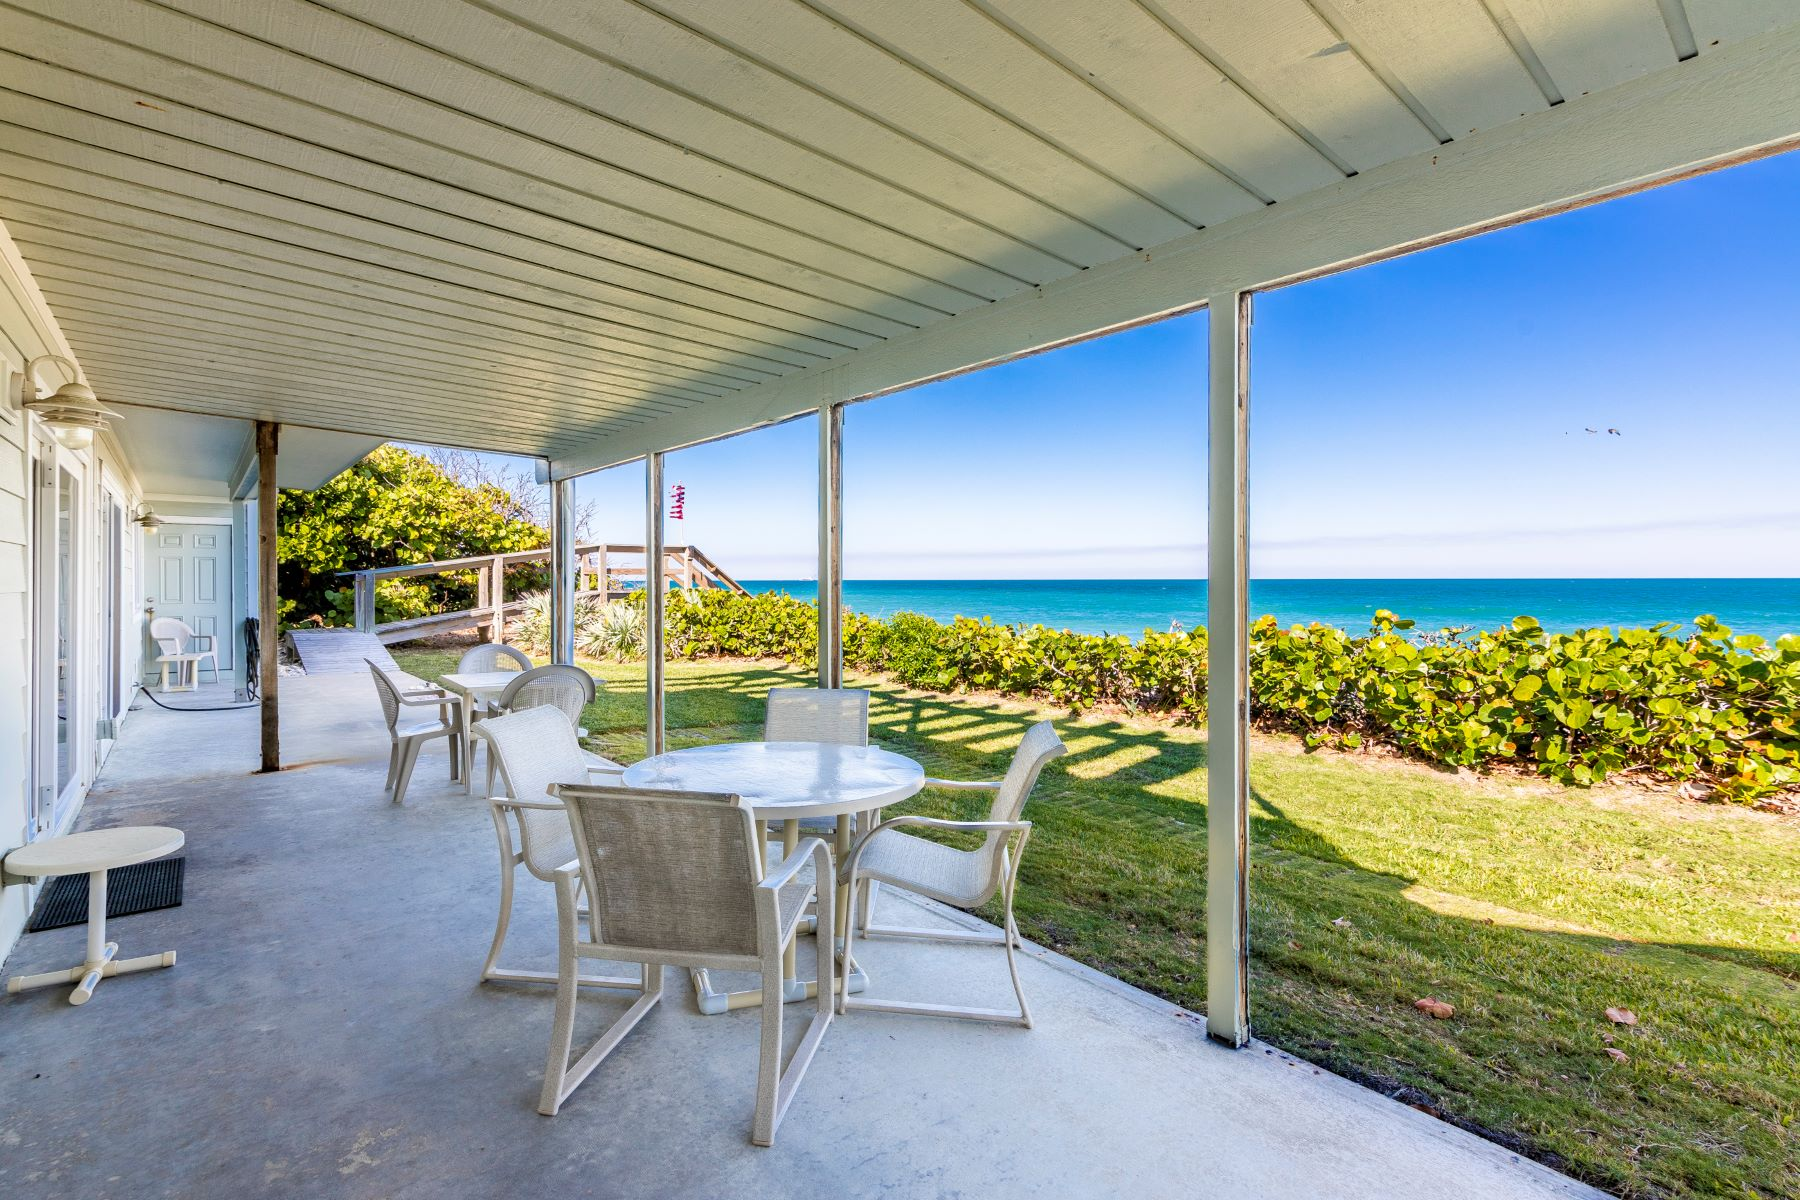 Additional photo for property listing at 3785 S Highway A1A Melbourne Beach, Florida 32951 United States